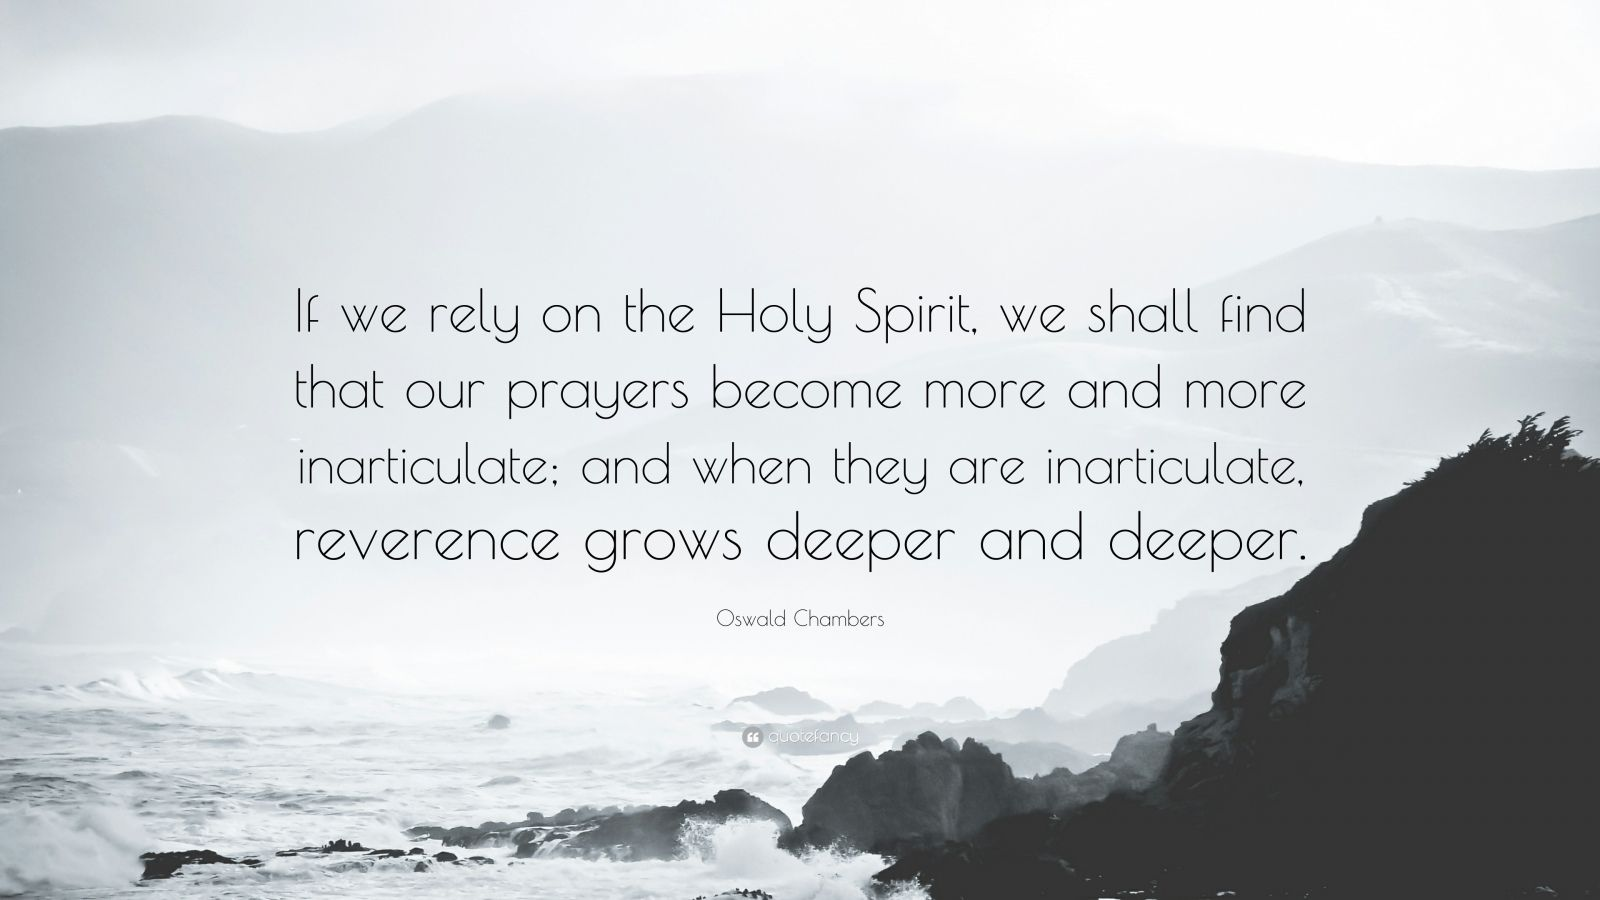 """Oswald Chambers Quote: """"If we rely on the Holy Spirit, we shall find that our prayers become more and more inarticulate; and when they are inarticulate, reverence grows deeper and deeper."""""""